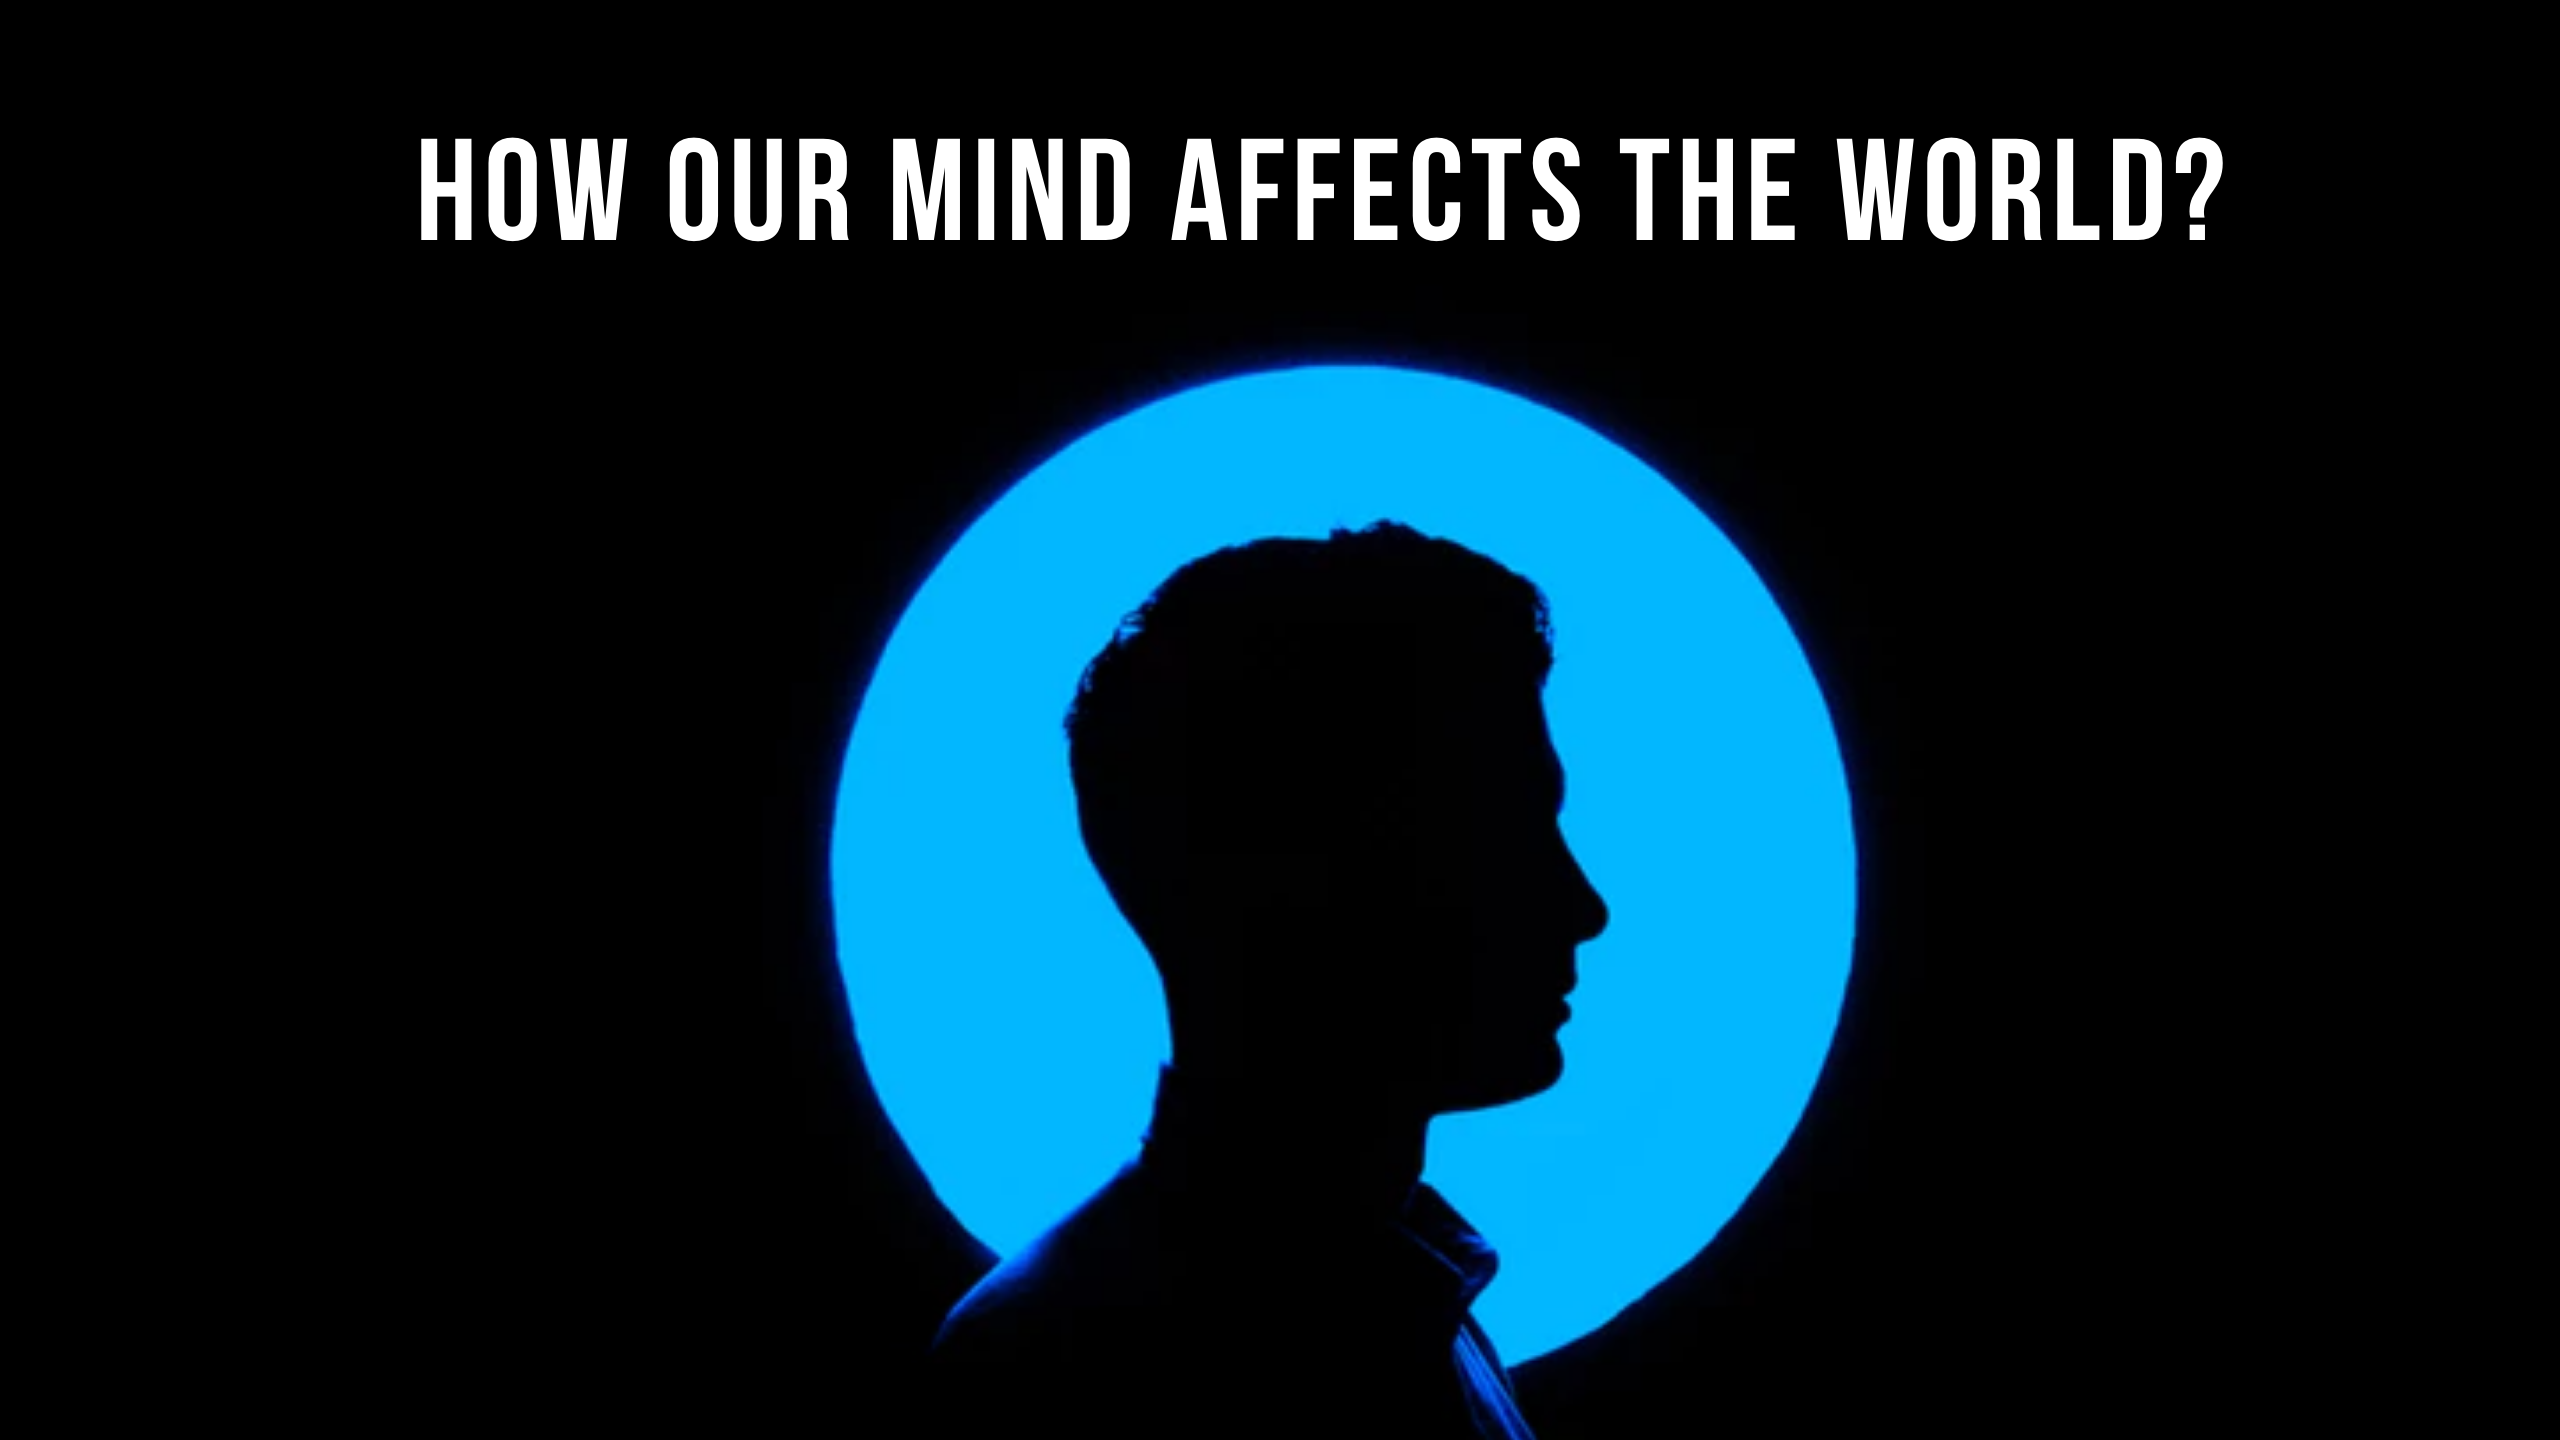 How our mind affects the world?